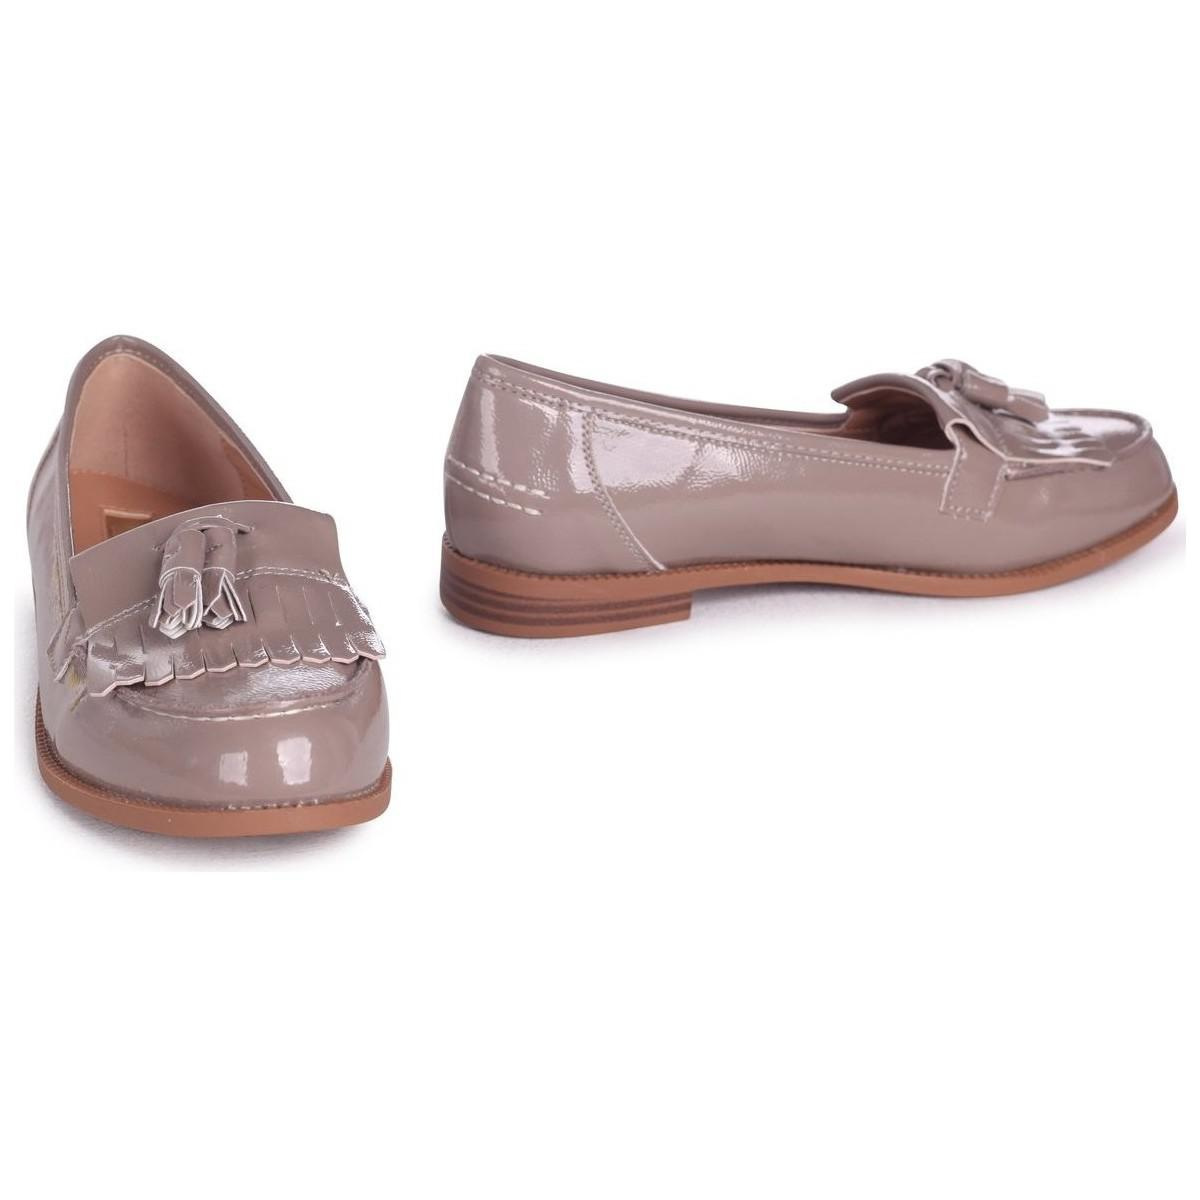 9ec165df221 Linzi - Multicolor Rosemary Women s Loafers   Casual Shoes In Other - Lyst.  View fullscreen